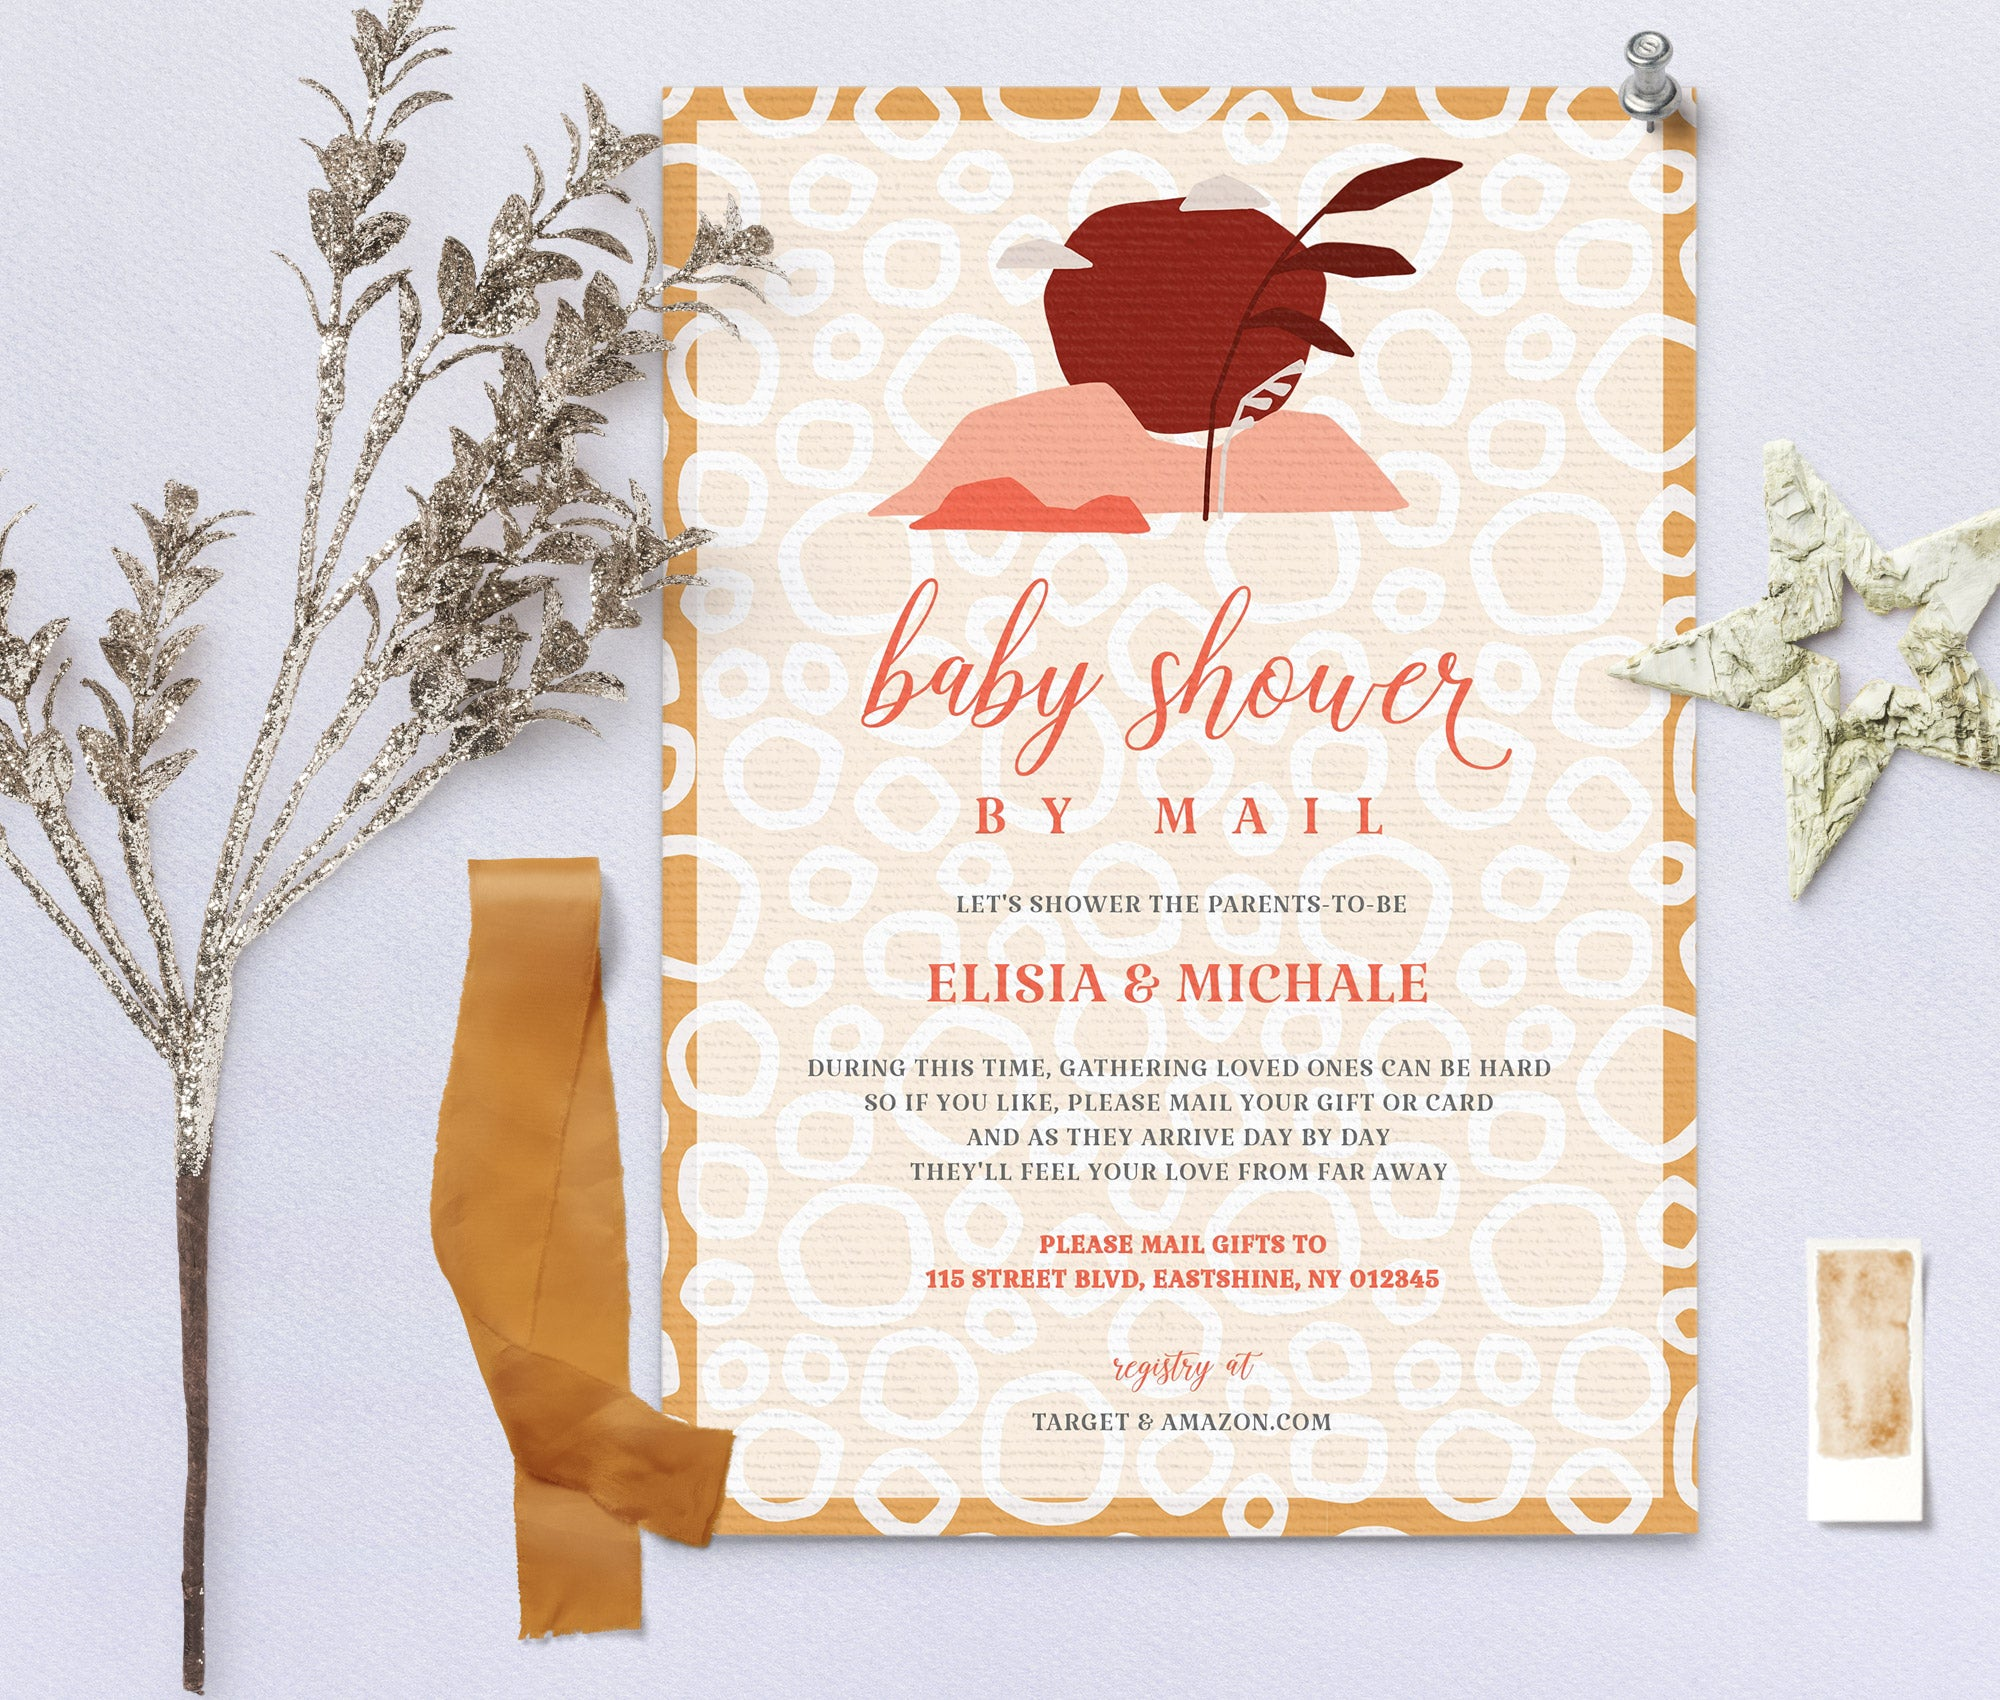 Baby Shower by Mail Invitation 2